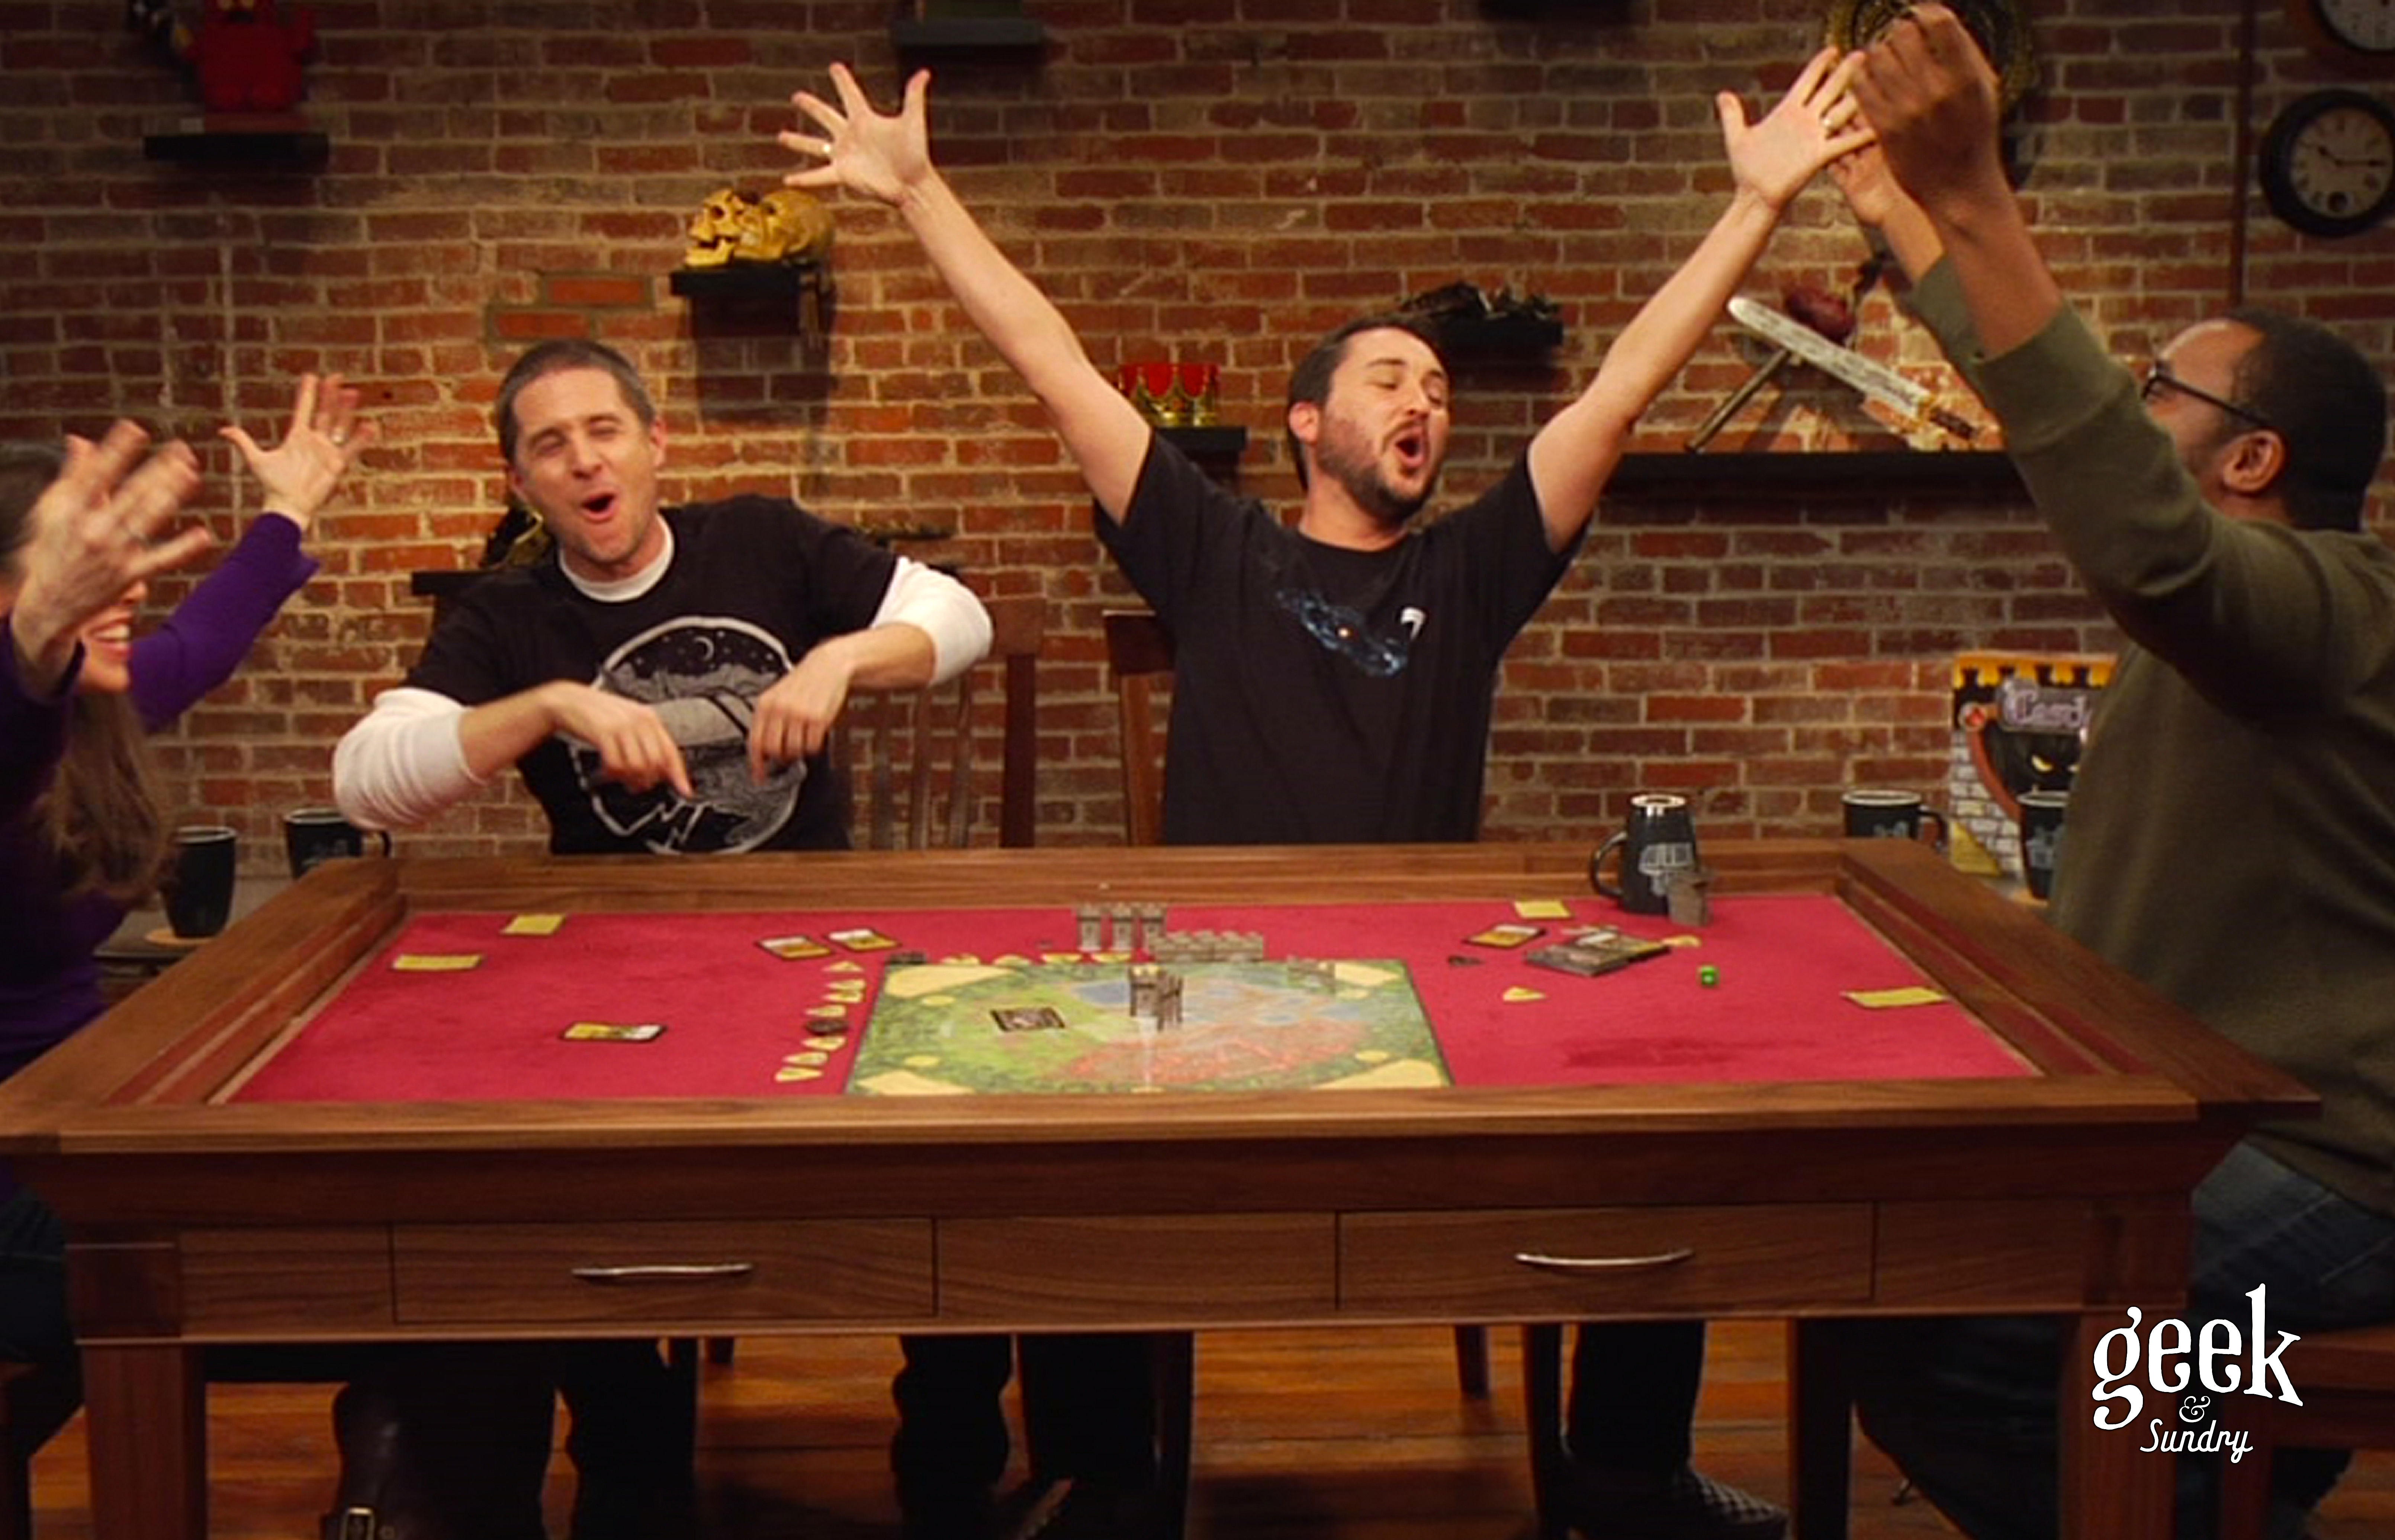 10 coolest gaming tables for the rich tabletop gamer for 10 in one games table